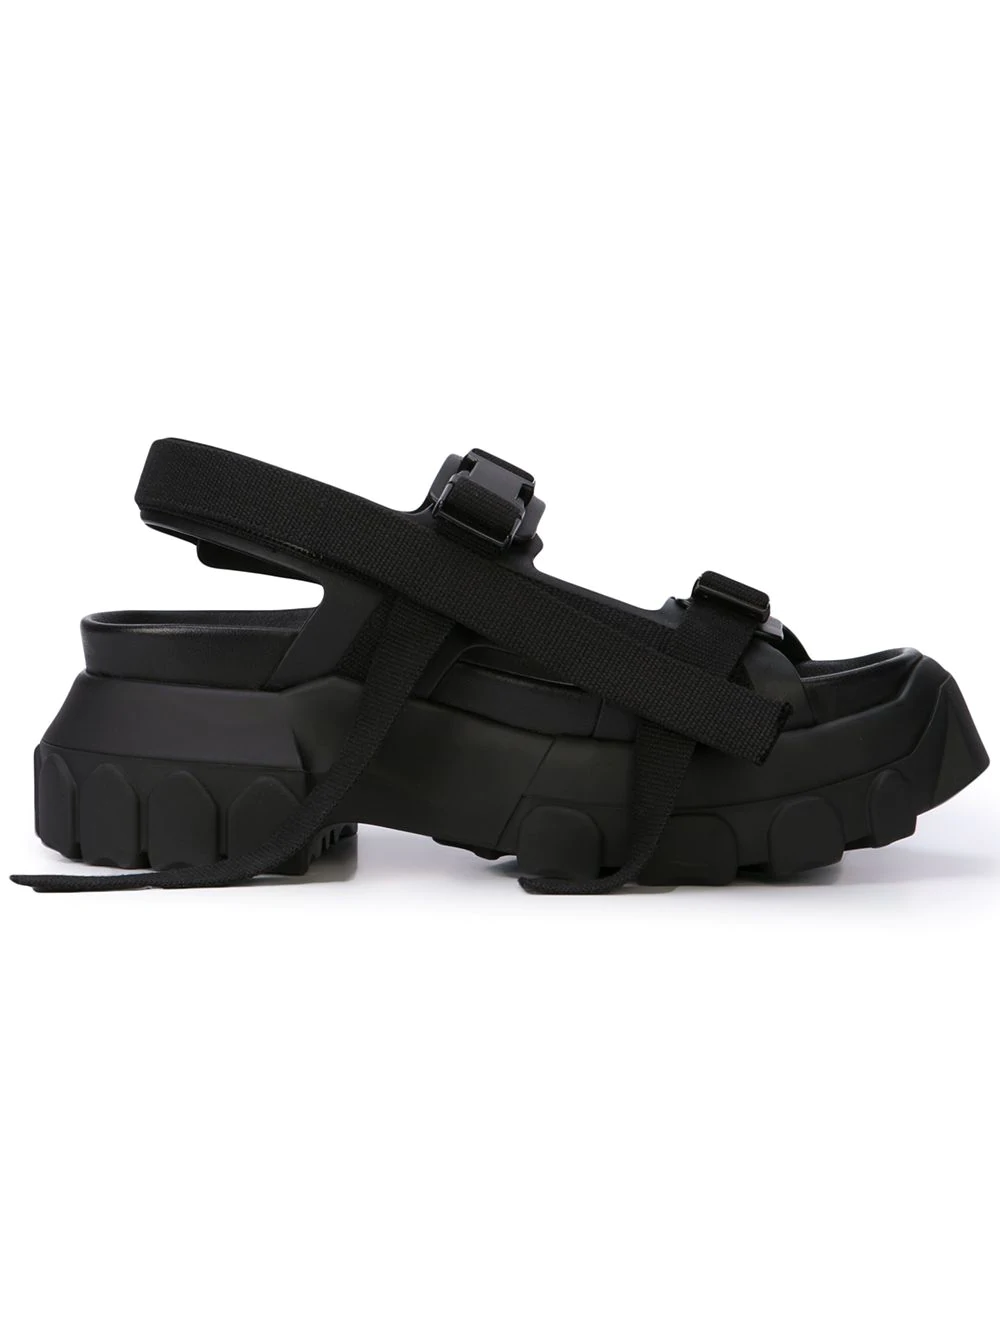 48a379595455 Rick Owens Sisyphus Hiking Sandals In Black In Nero